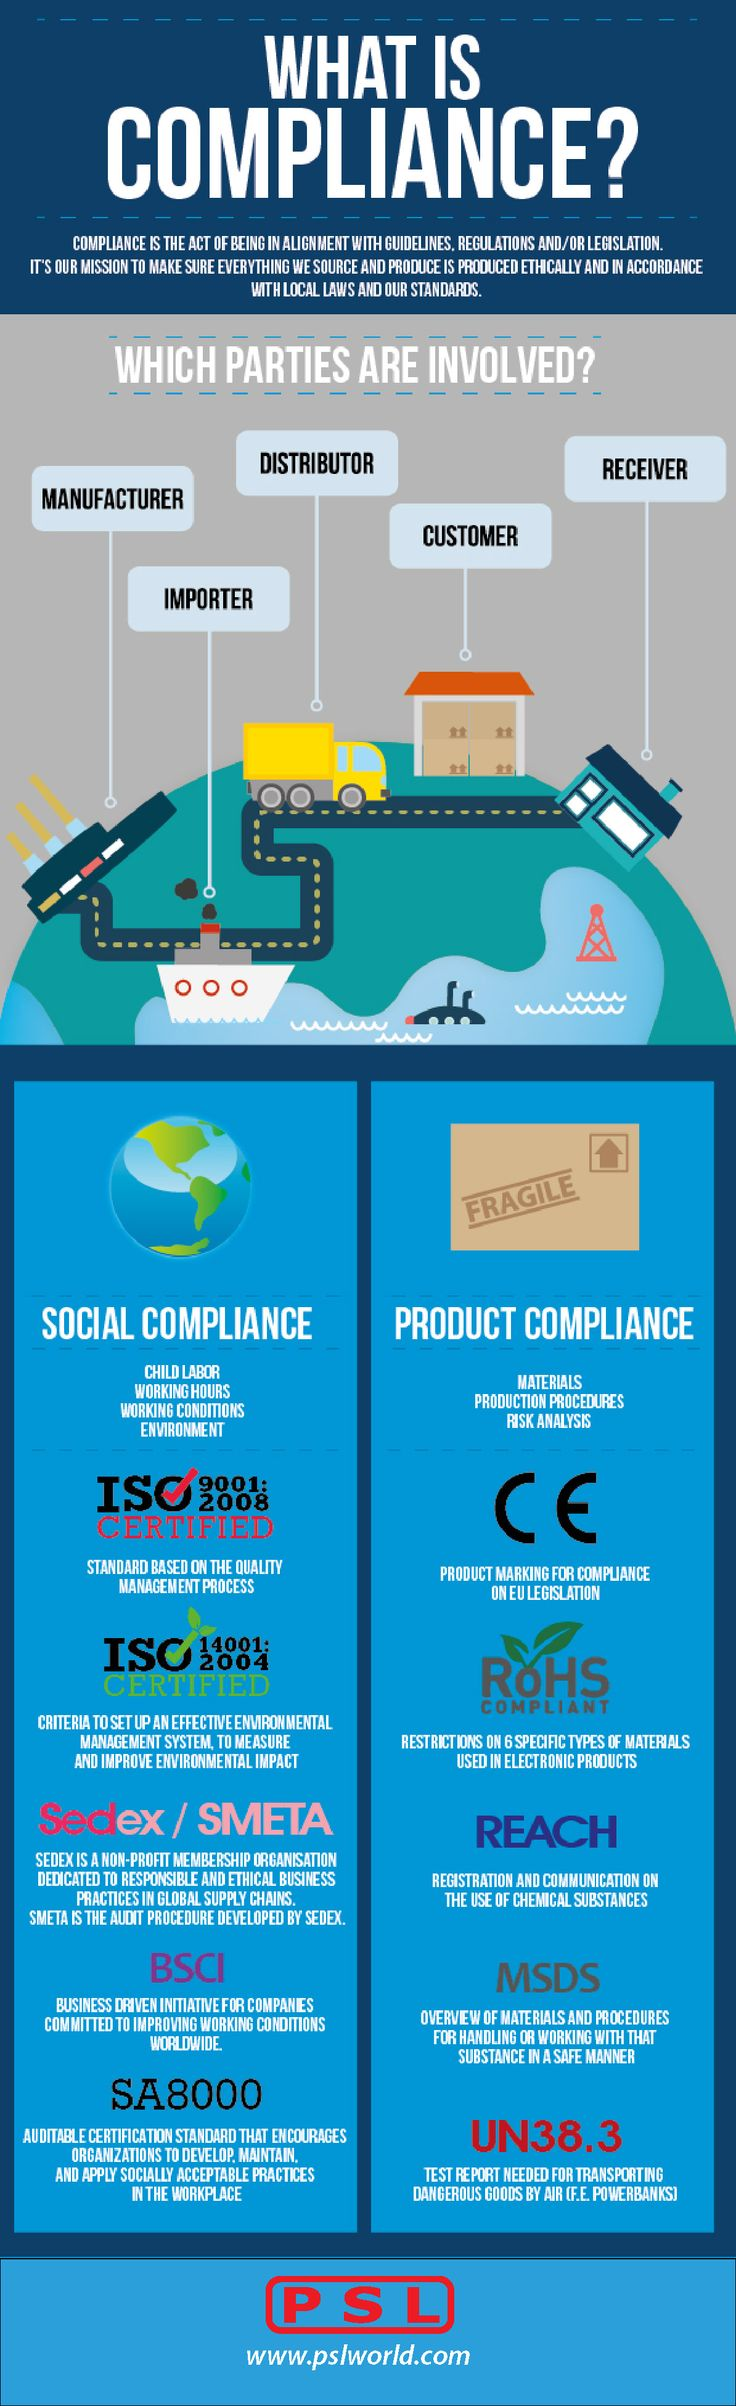 Social and Product Compliance Infographic from PSL   www.pslcanada.com